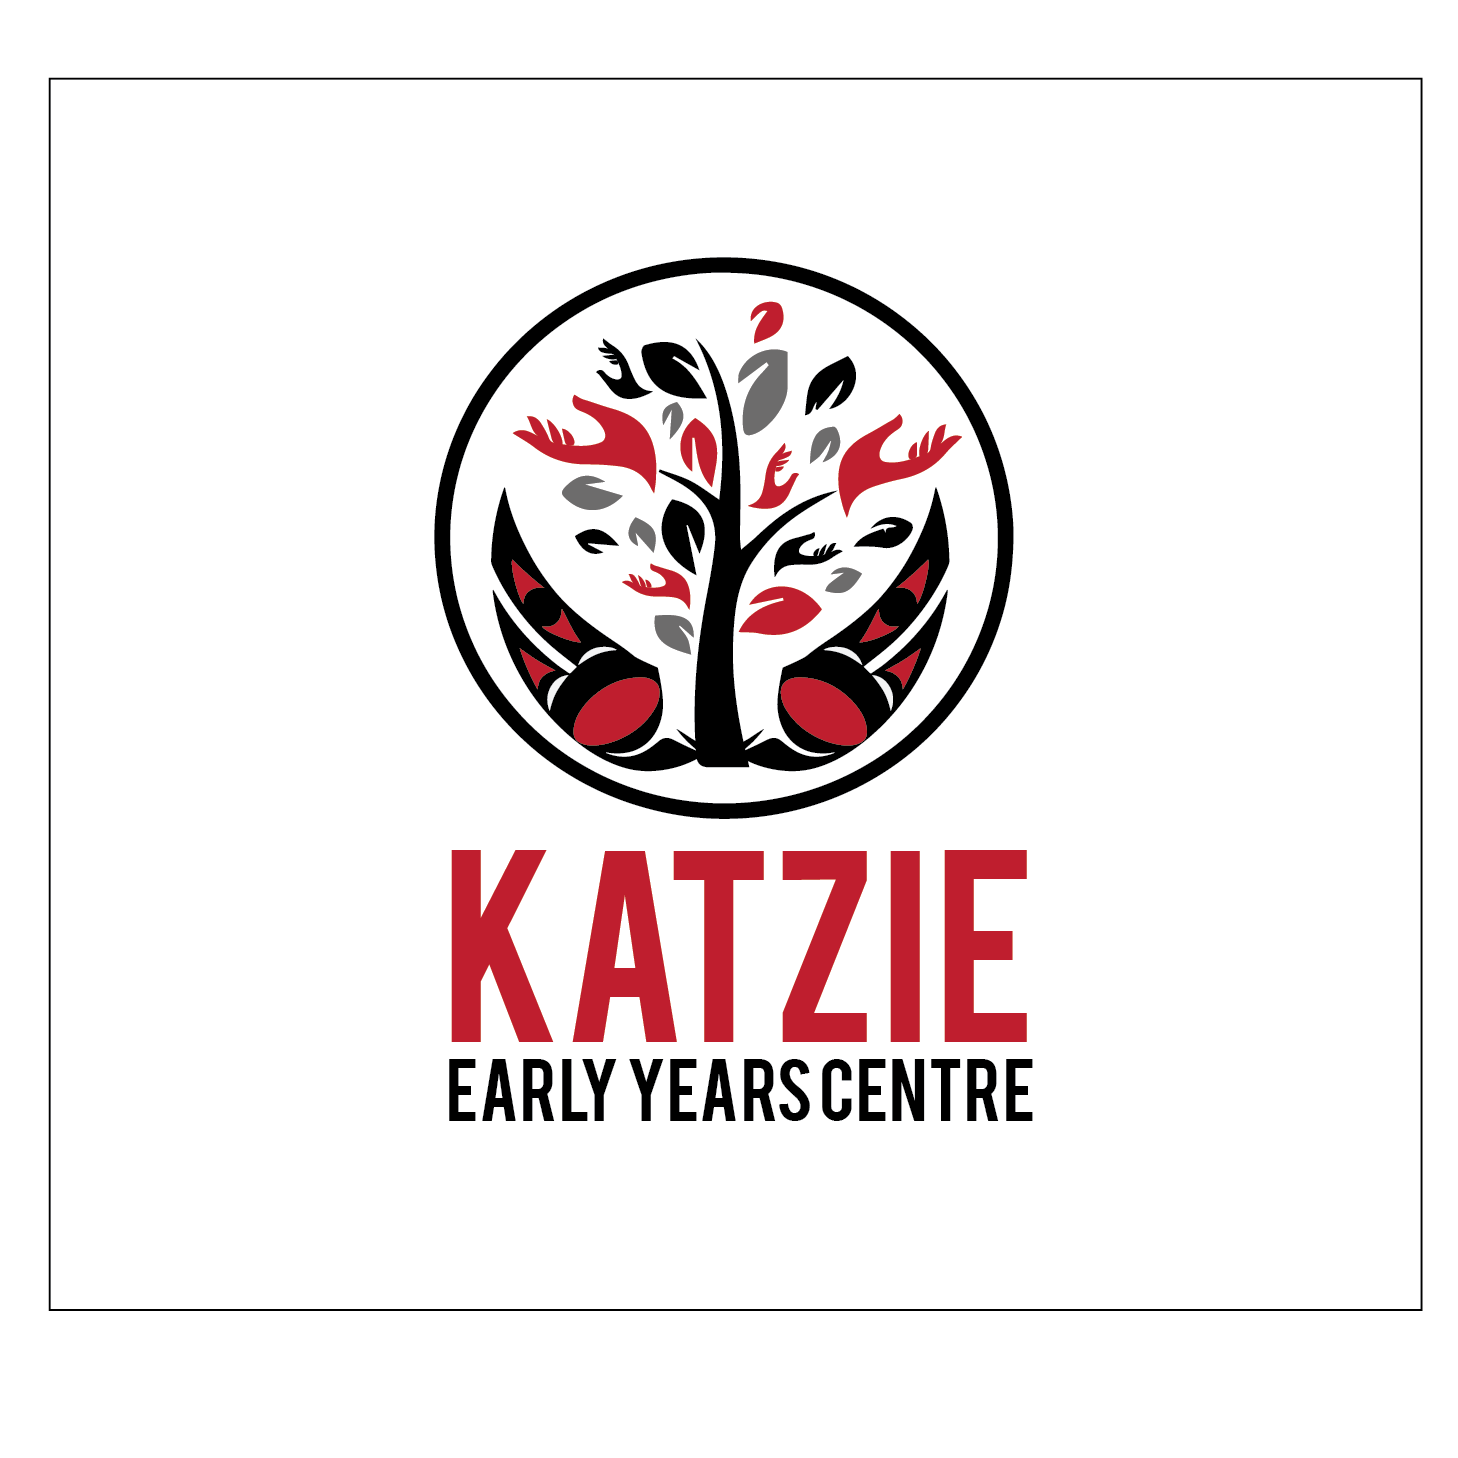 Early Years Centre Needs modern attractive design!!HELP!